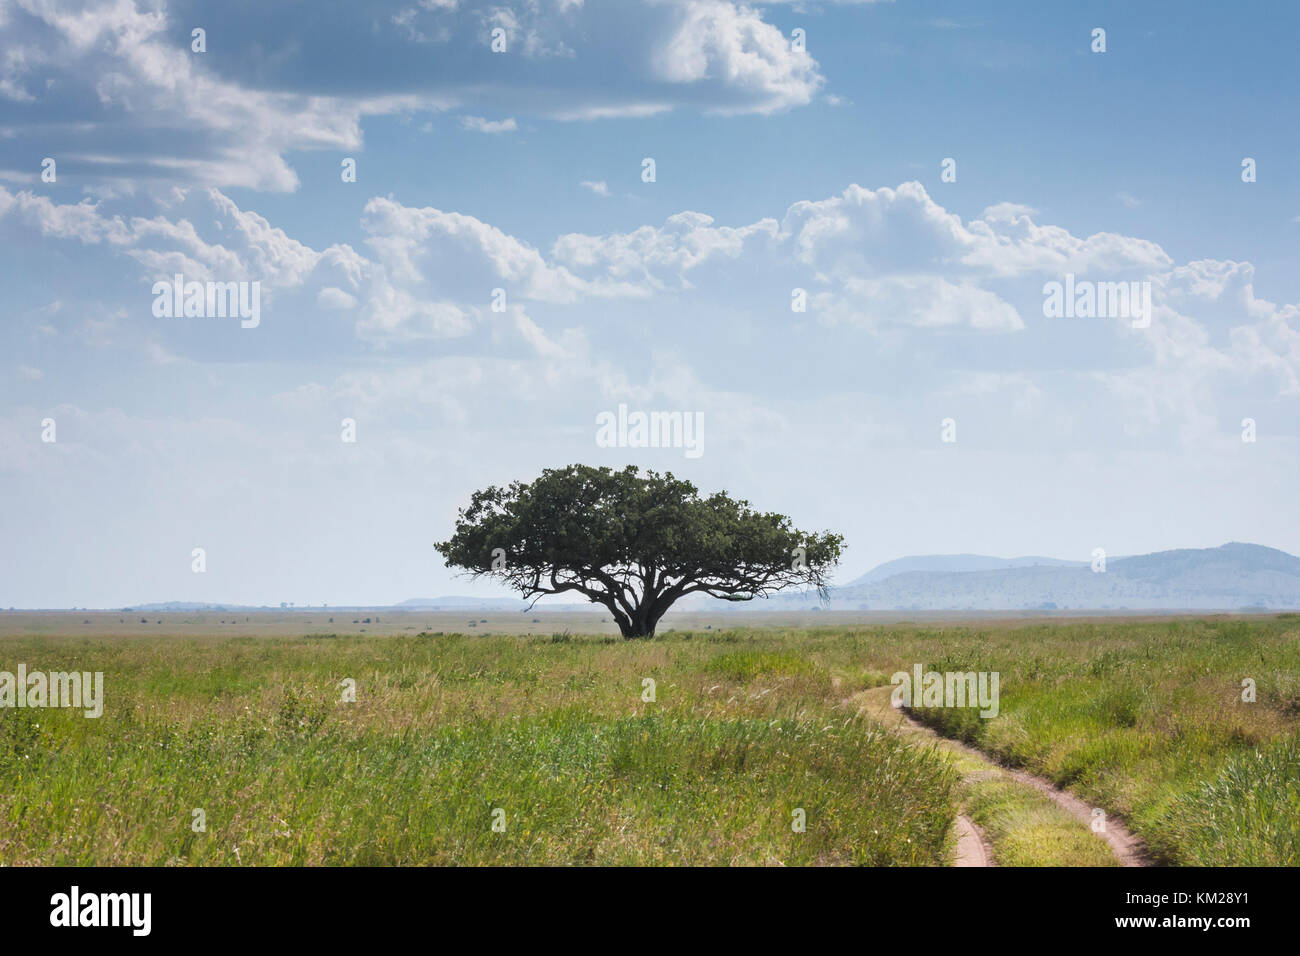 Acacia tree against a cloudy sky in the Serengeti, Tanzania, Africa - Stock Image